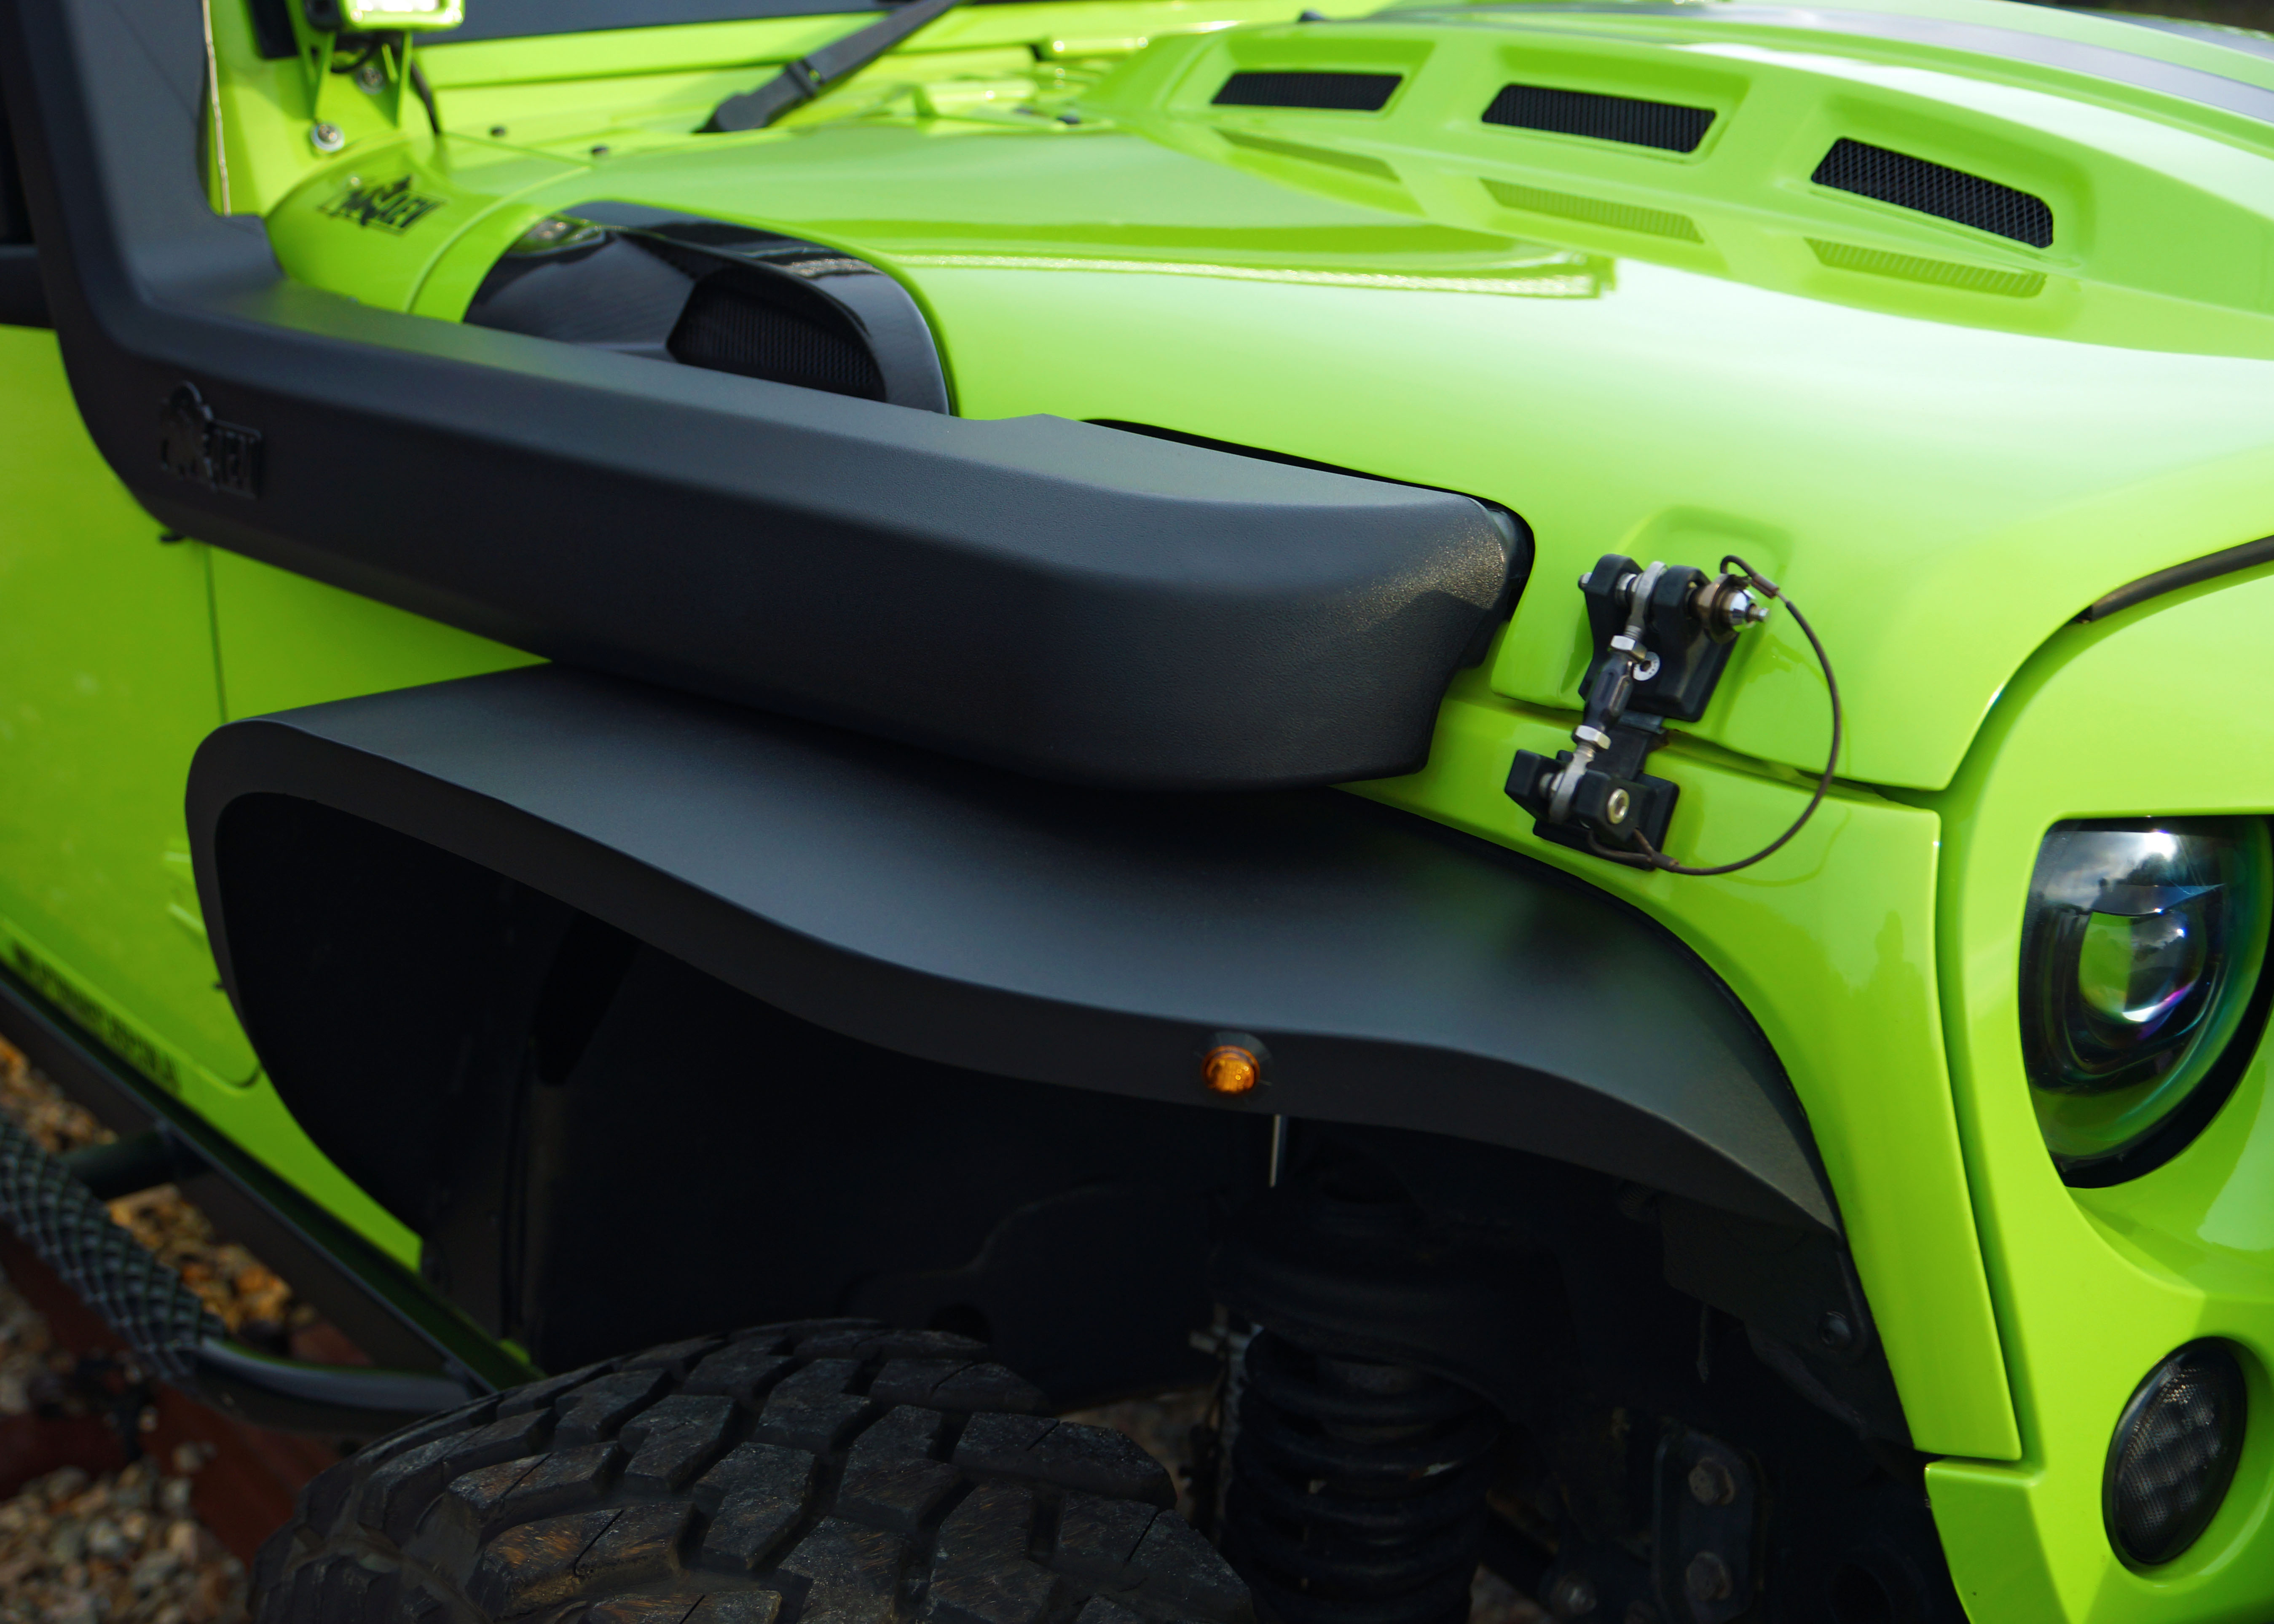 Jeep Wrangler Fenders >> Jpa 1 5 Inch Wider Aluminium Pro Series Wider Fender Flares To Suit